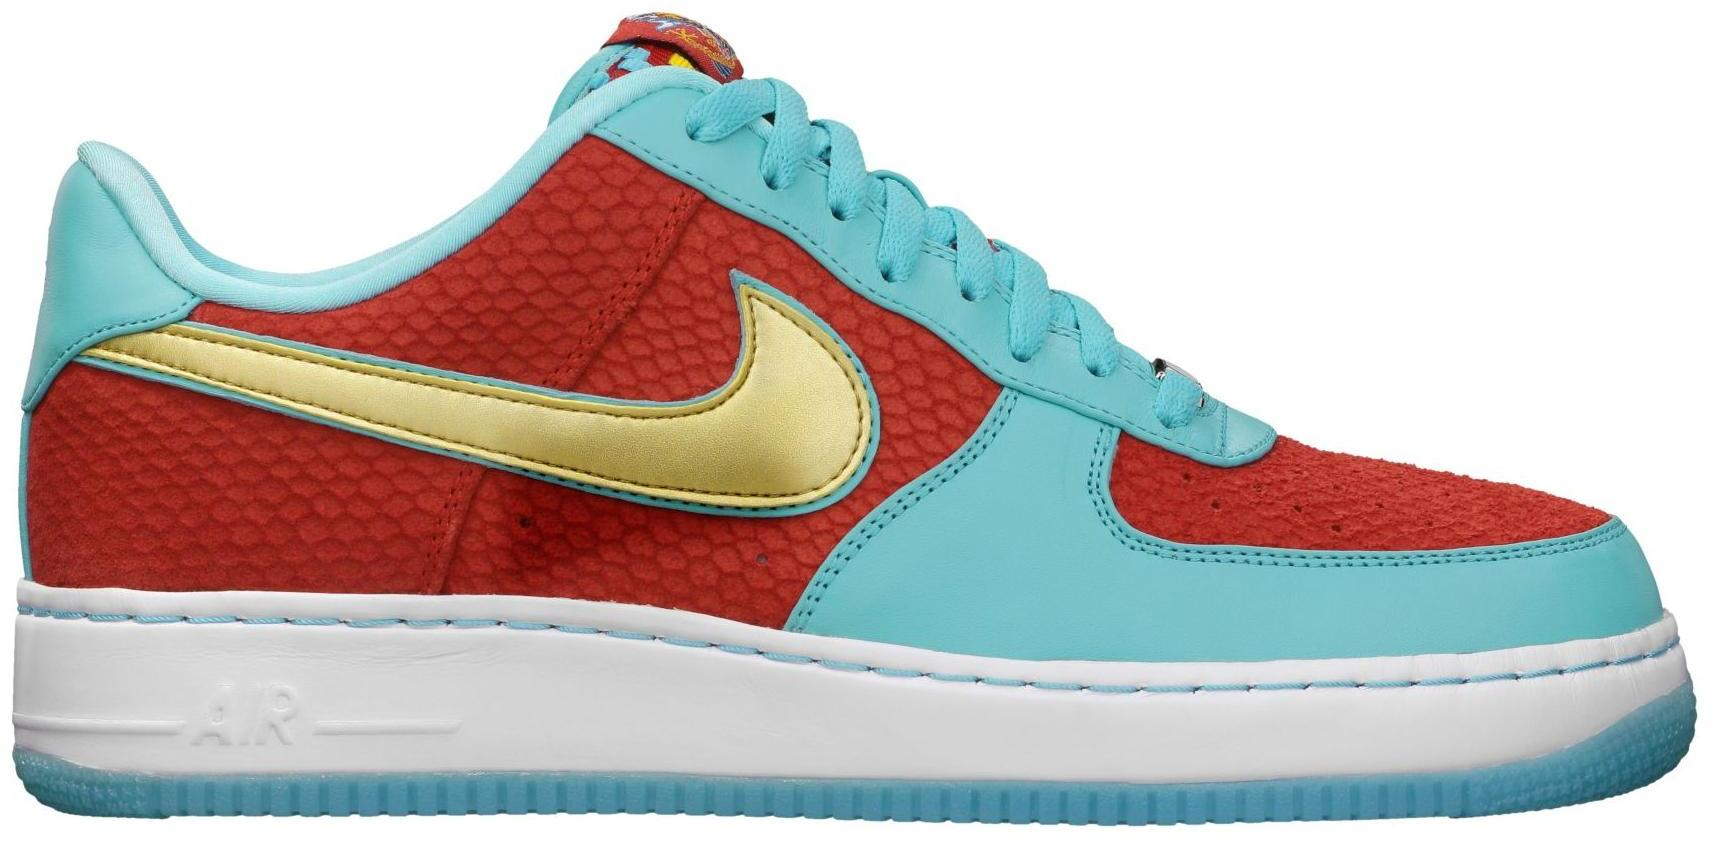 Air Force 1 Low Year of the Dragon 2